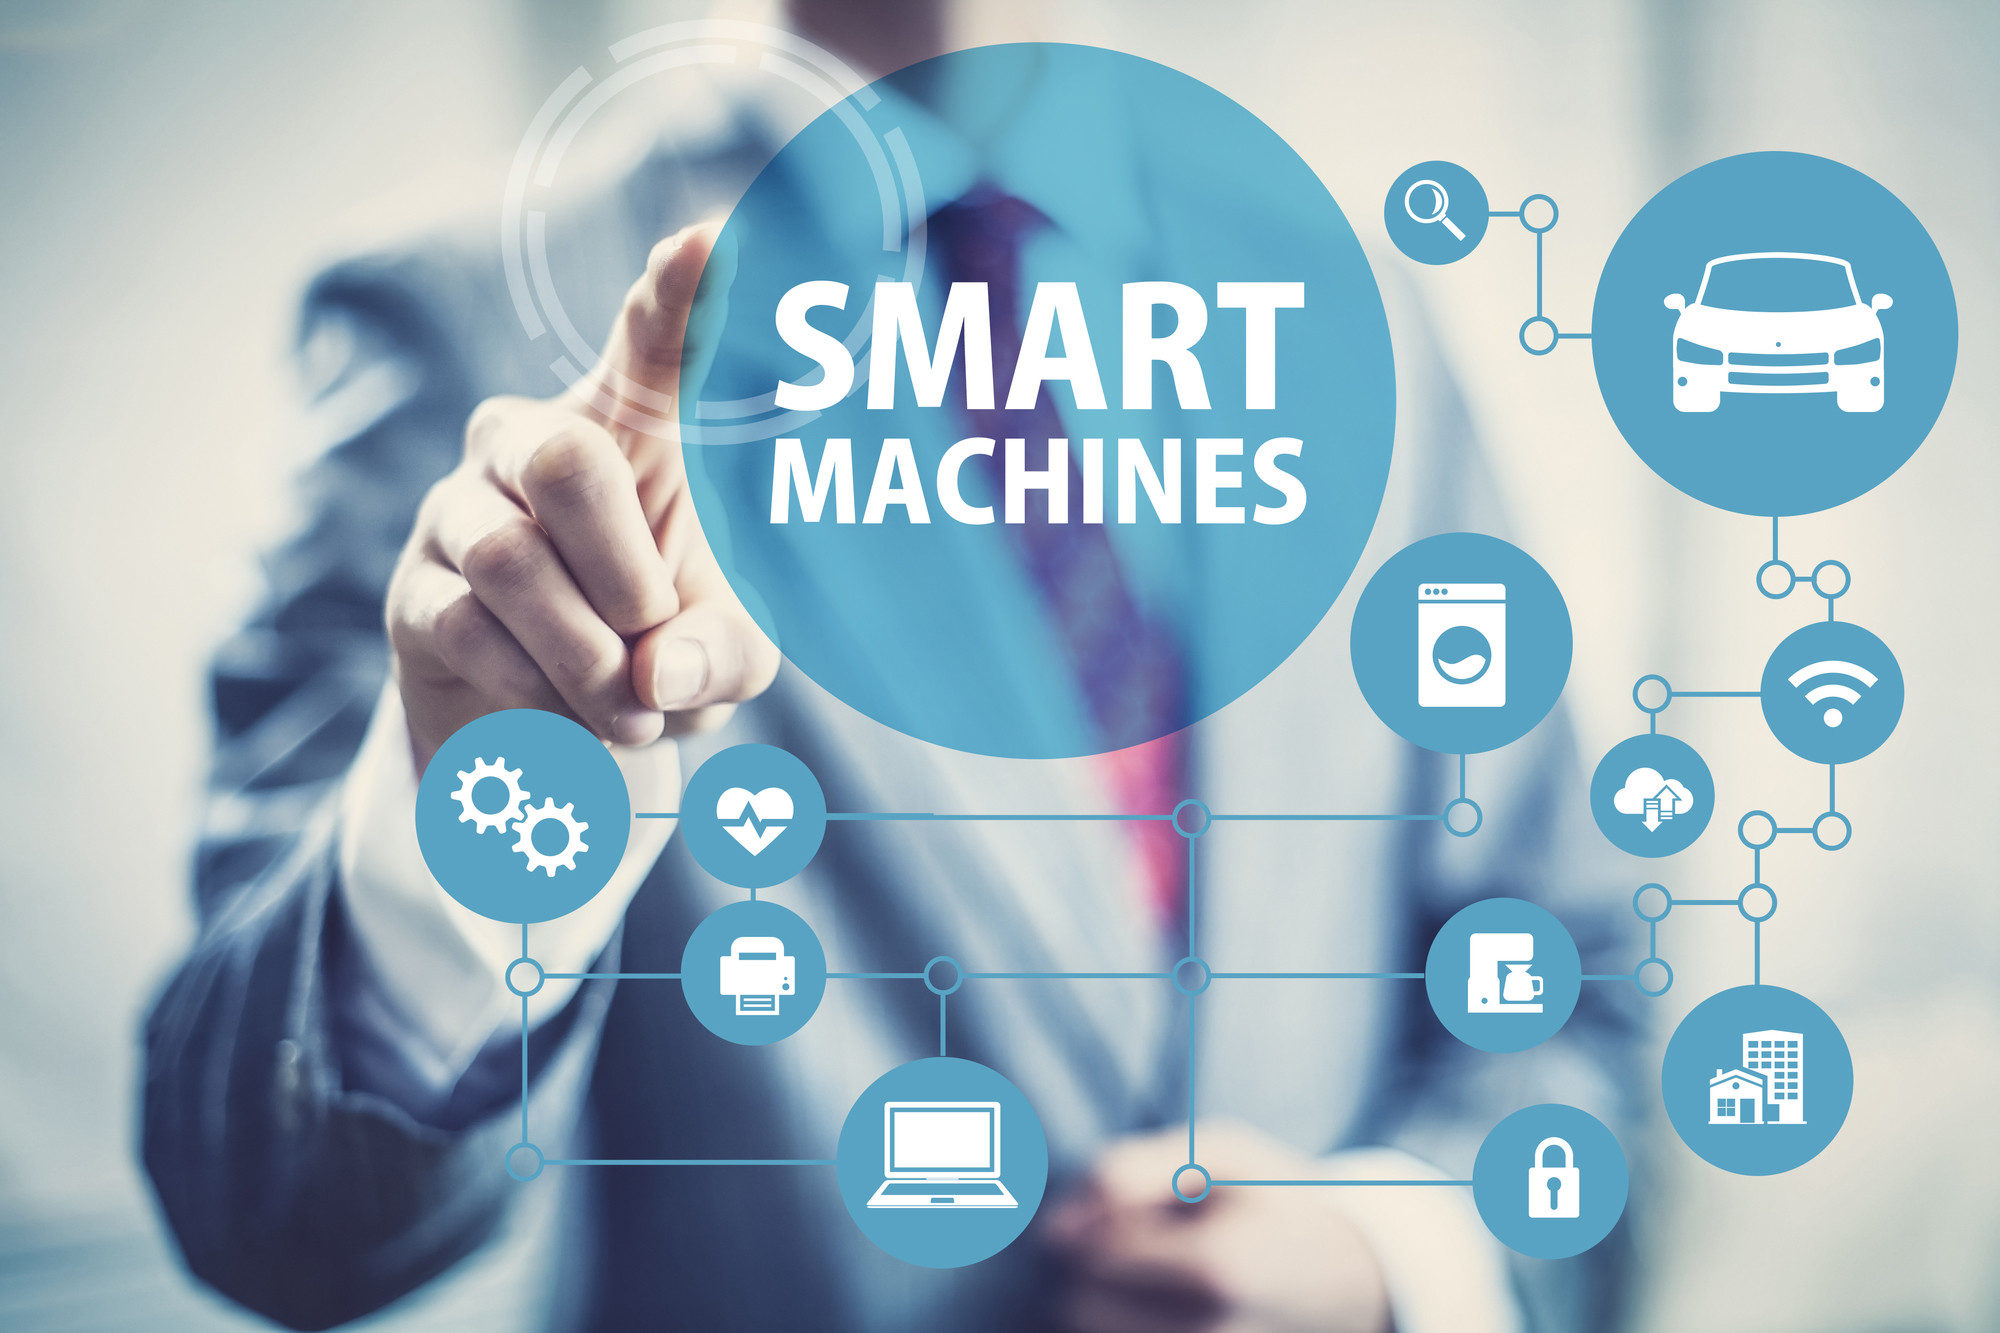 Smart machines use Intelligent Technology